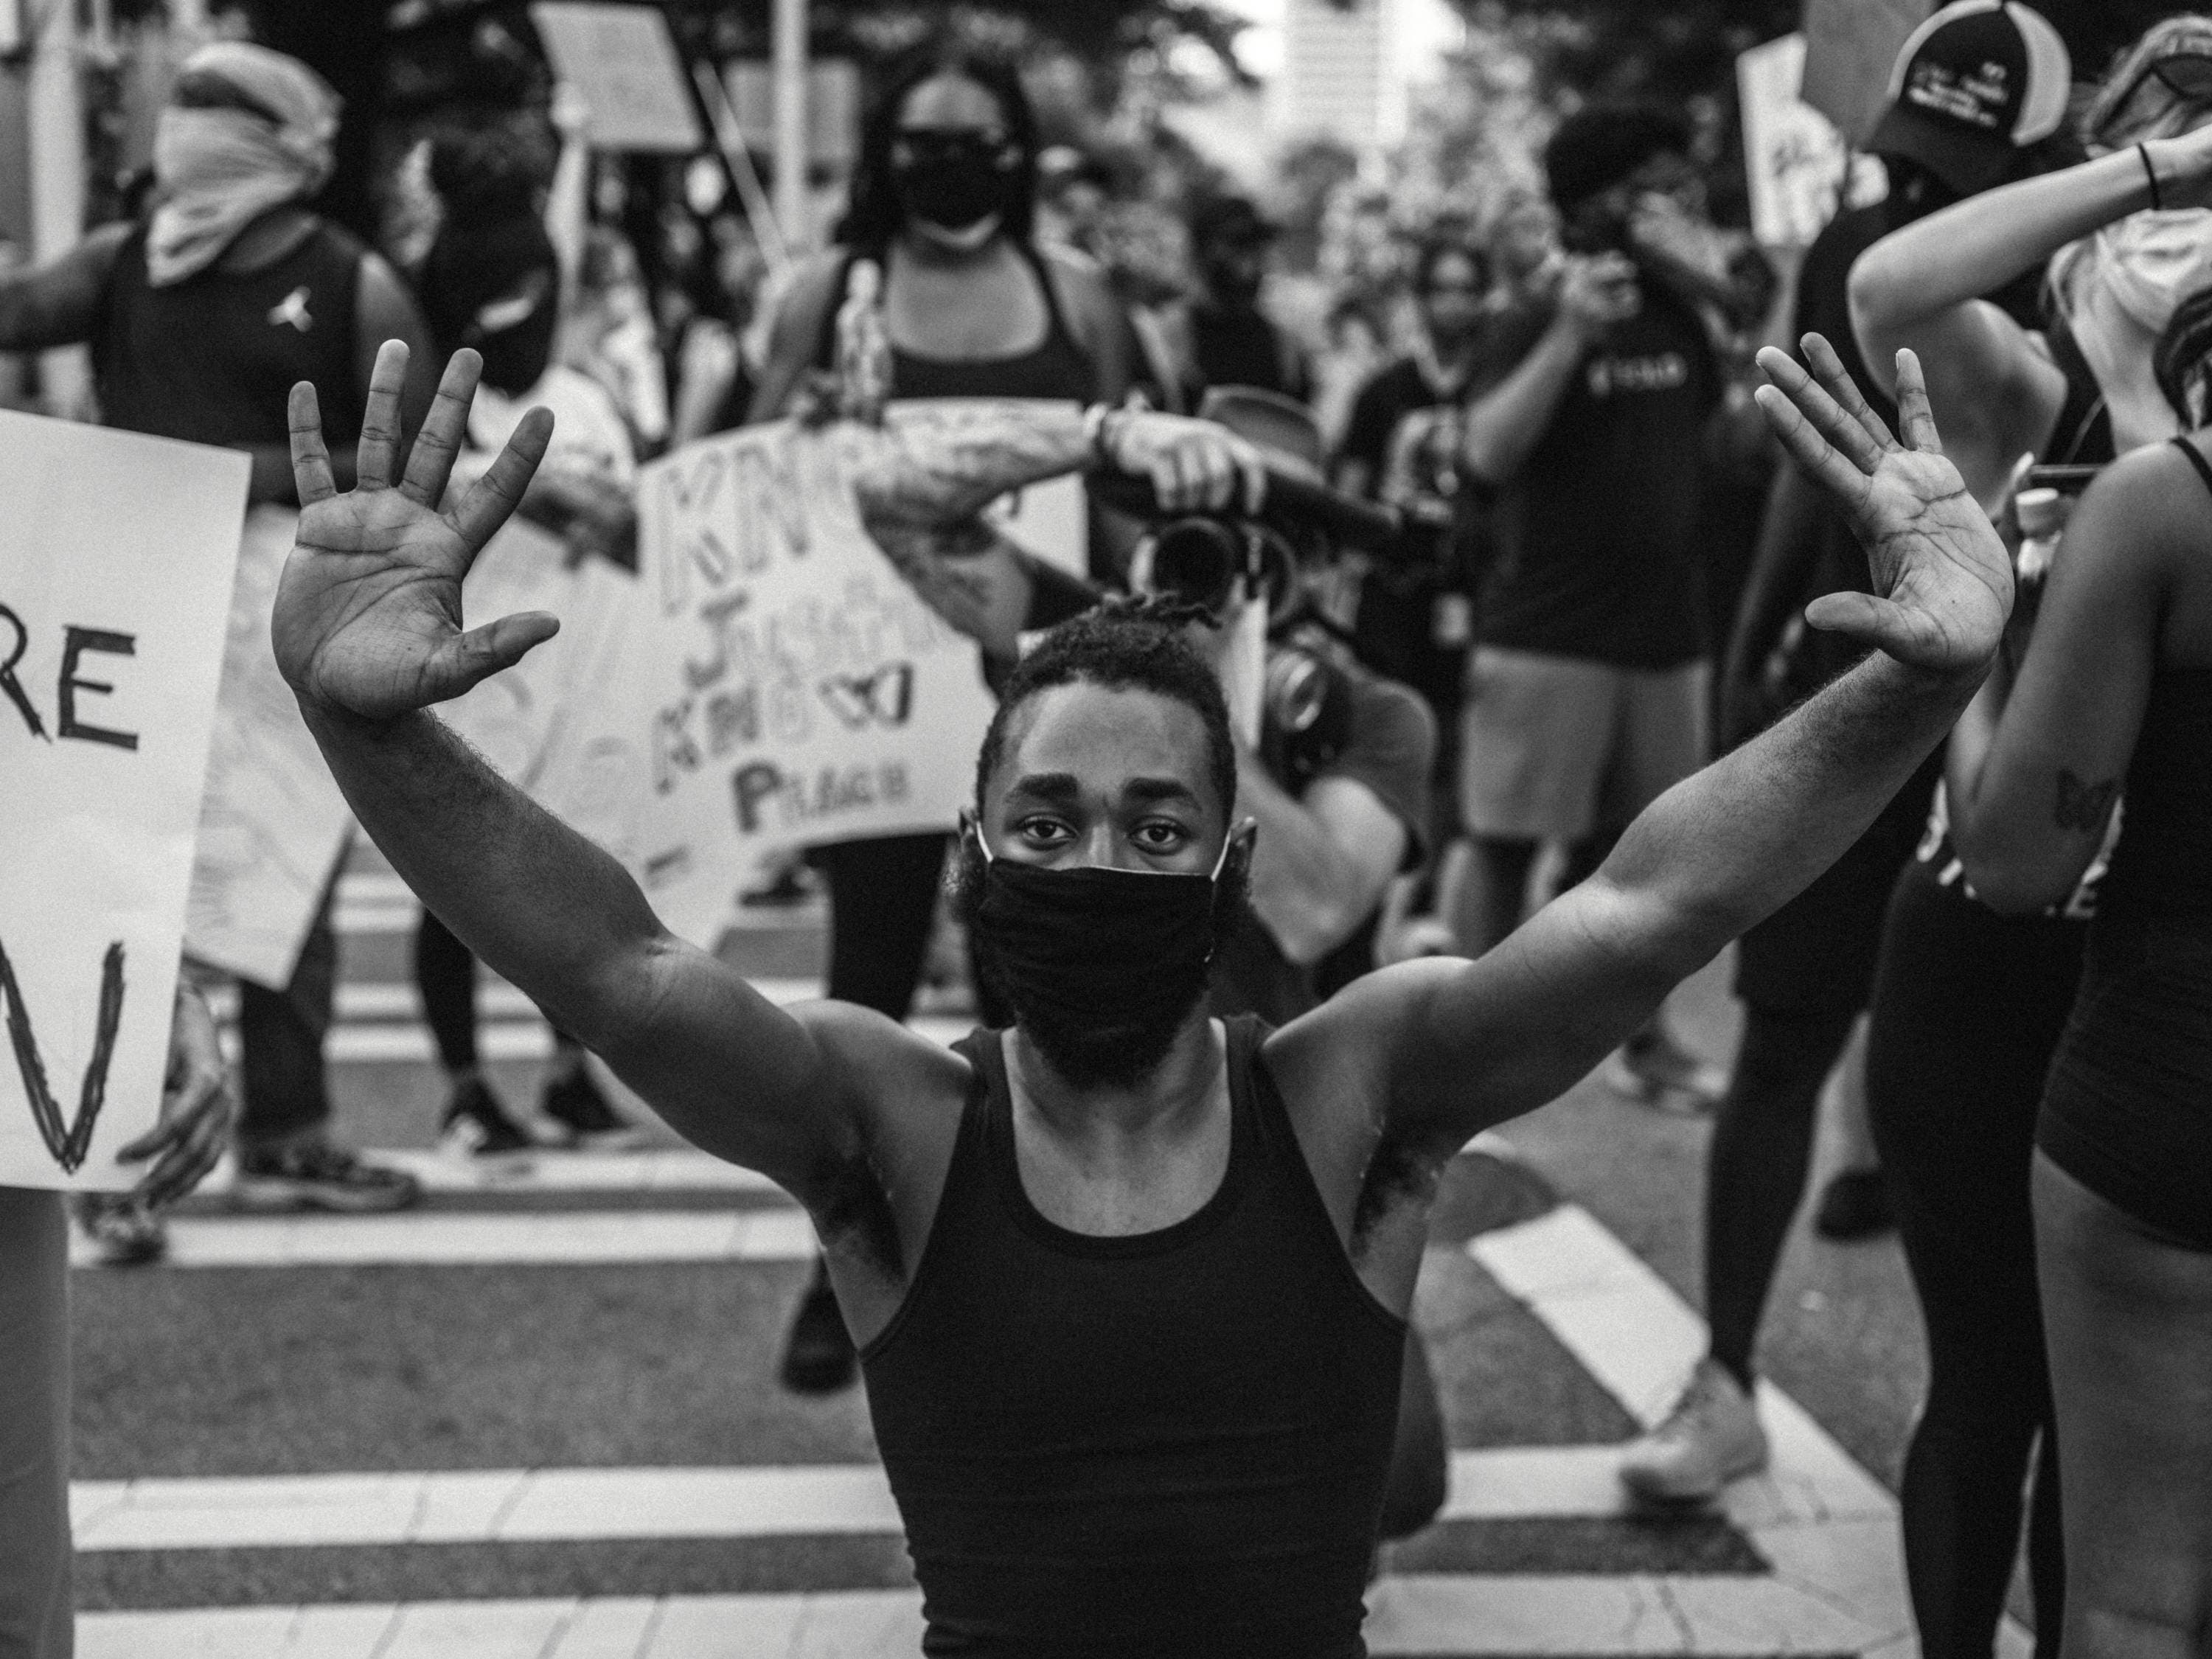 Lynsey Weatherspoon Shares Her Strong Feelings on Photographing BLM